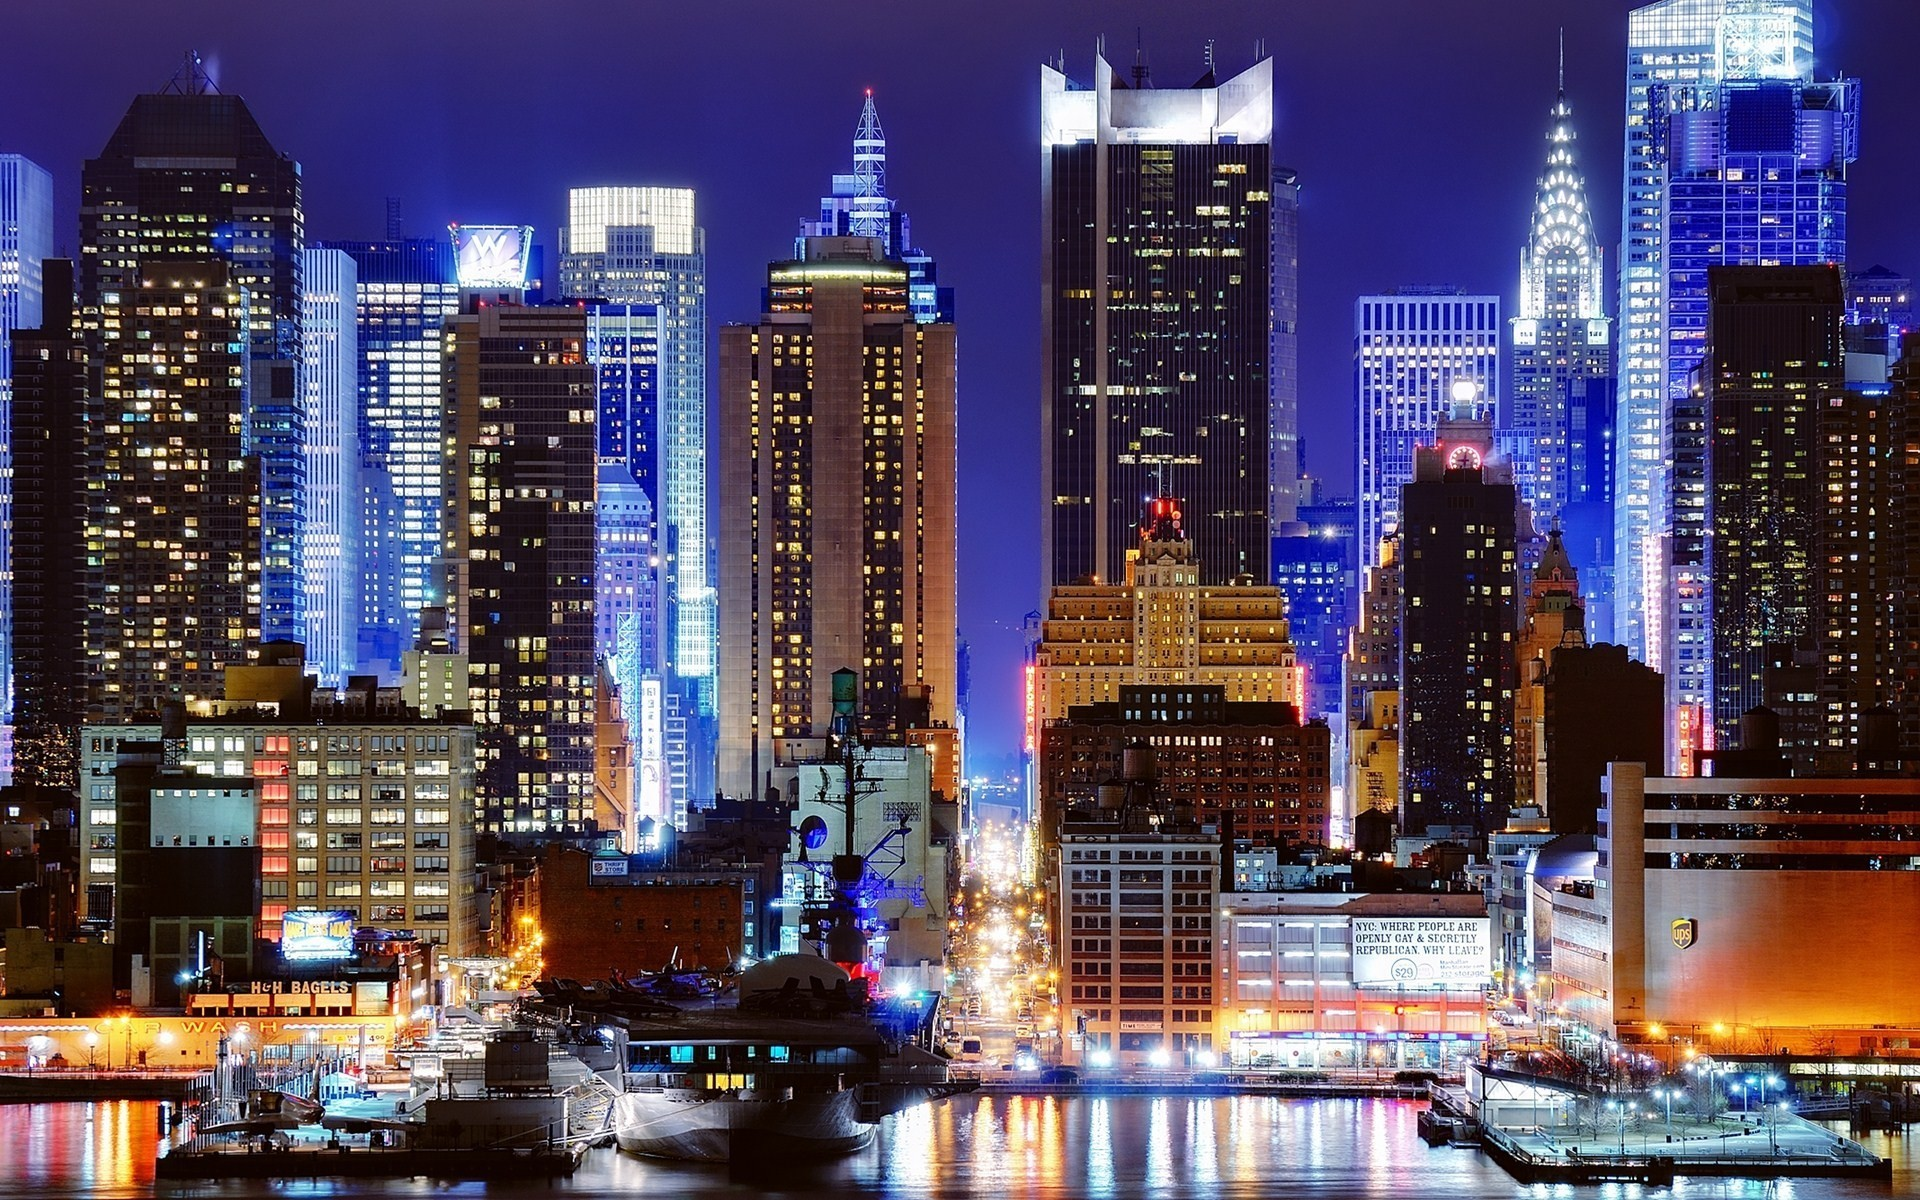 night new york city harbour city lights wallpaper background 1920x1200